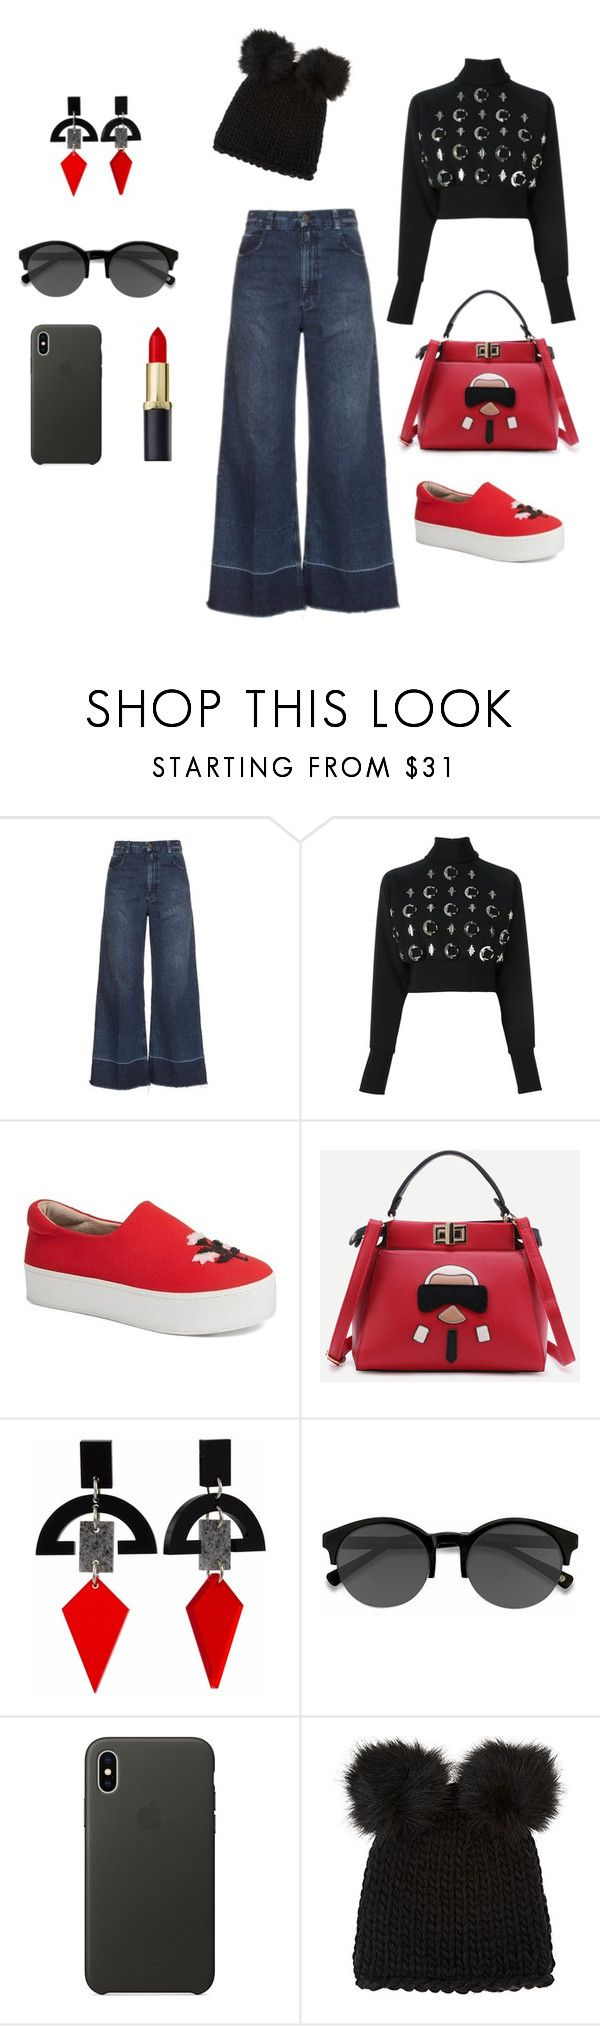 """Untitled #148"" by kameliya-6711 ❤ liked on Polyvore featuring Rachel Comey, David Koma, Opening Ceremony, Toolally, EyeBuyDirect.com, Apple and Barneys New York"